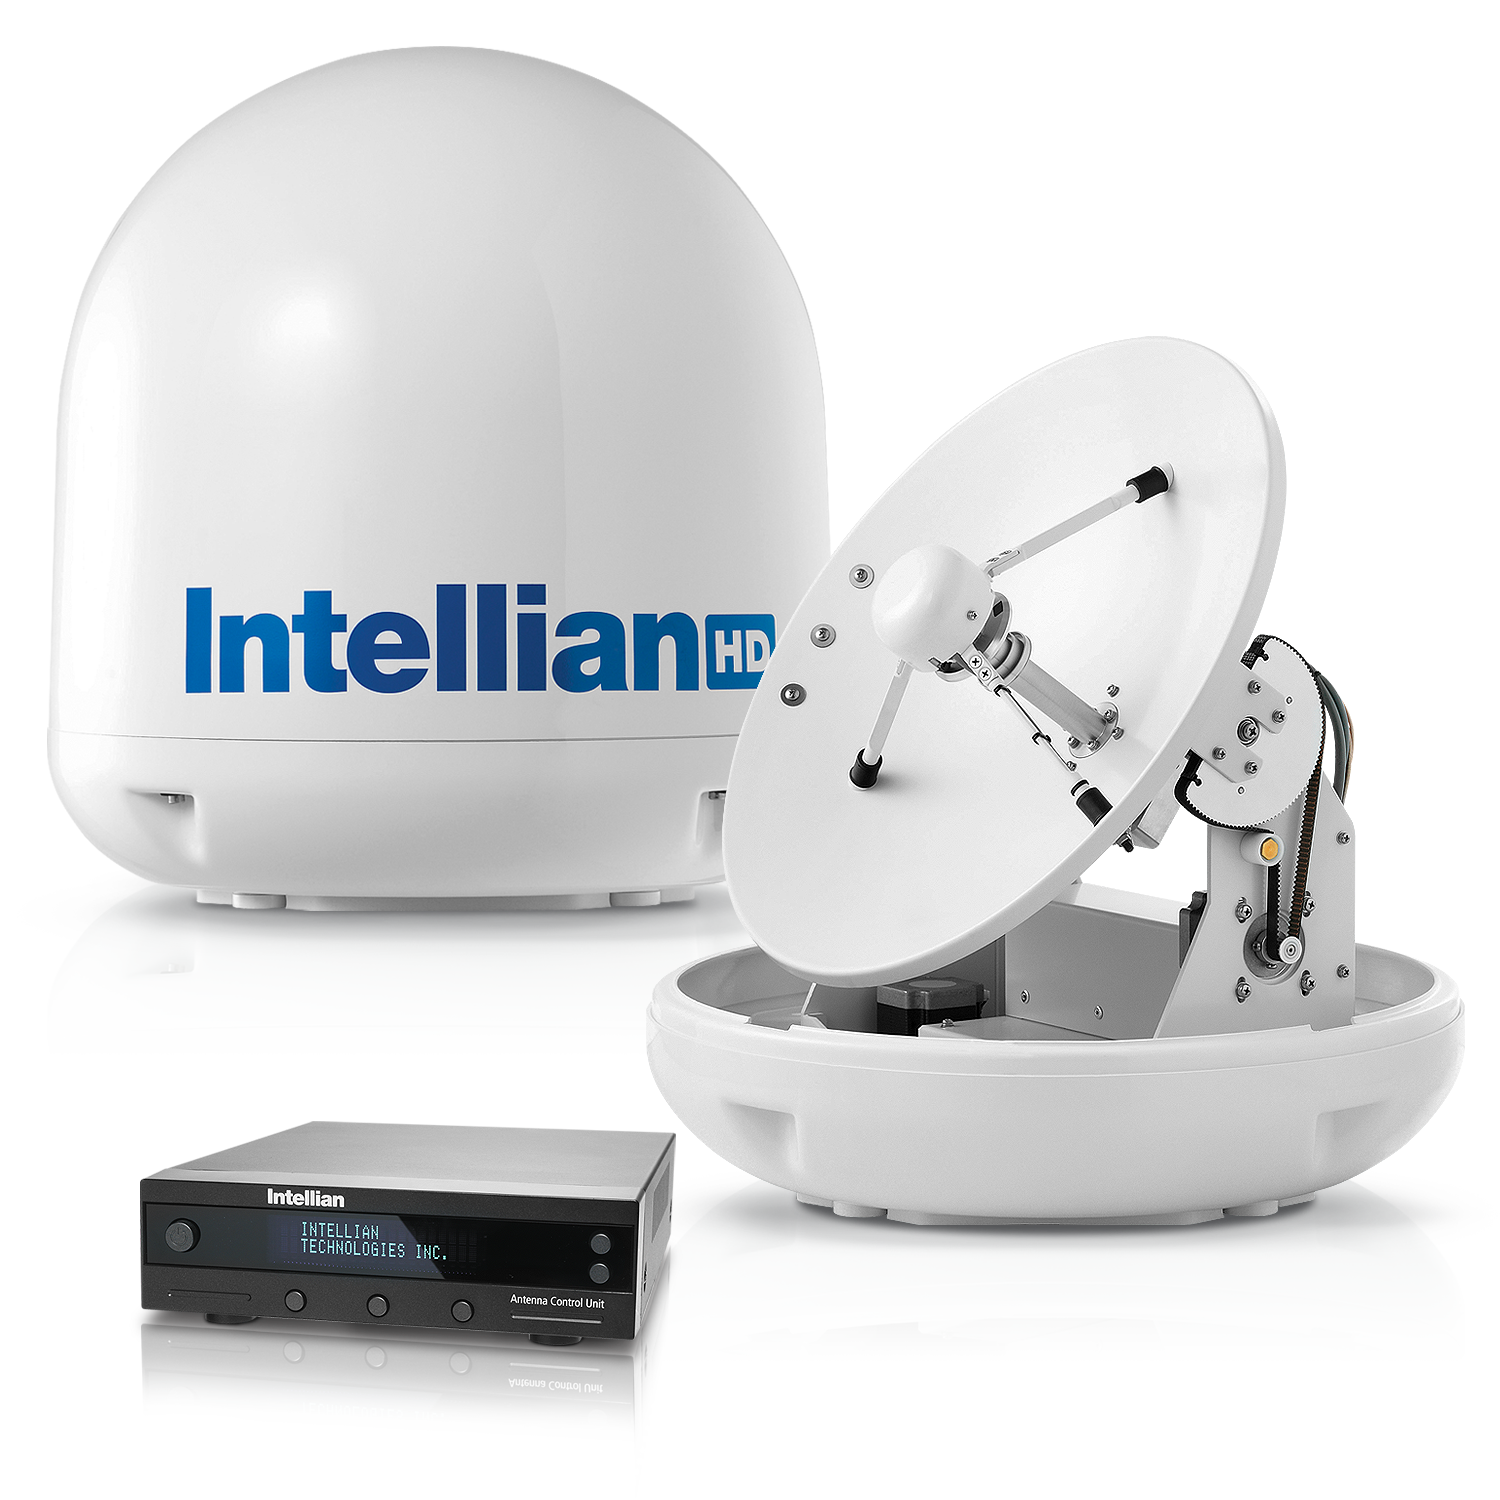 Intellian Technologies, Marine Satellite Antenna, HD Antenna, VSAT Antenna